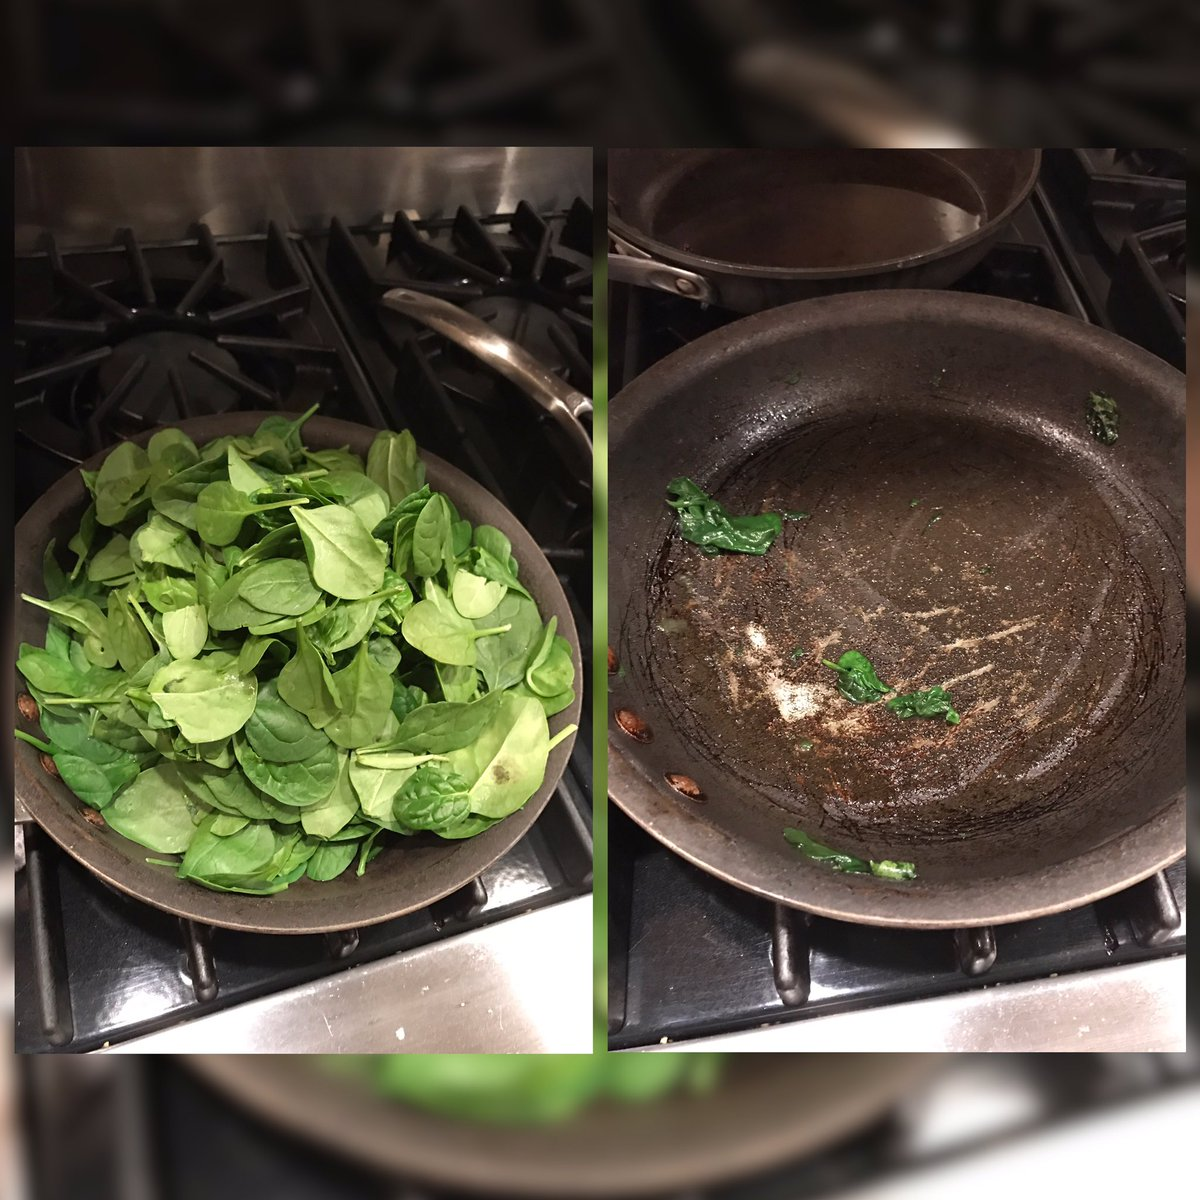 Cooking spinach be like .... https://t.co/tAXvhCfort